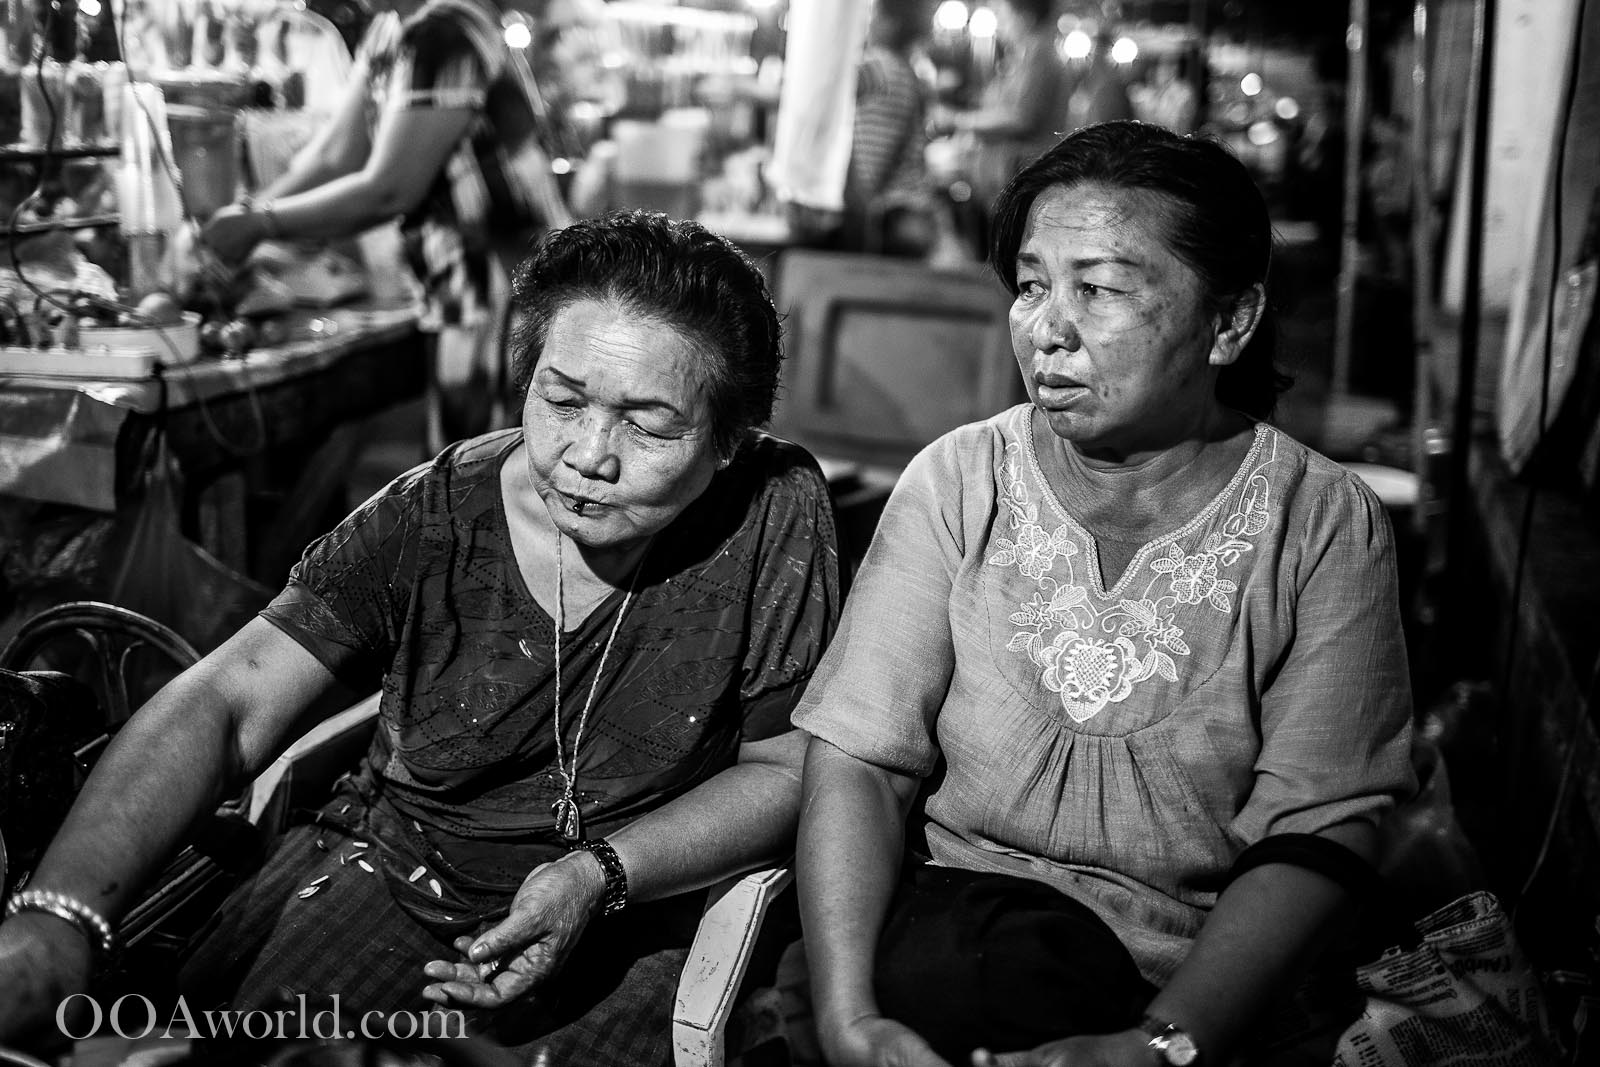 Women Luang Prabang Night Food Market Photo Ooaworld